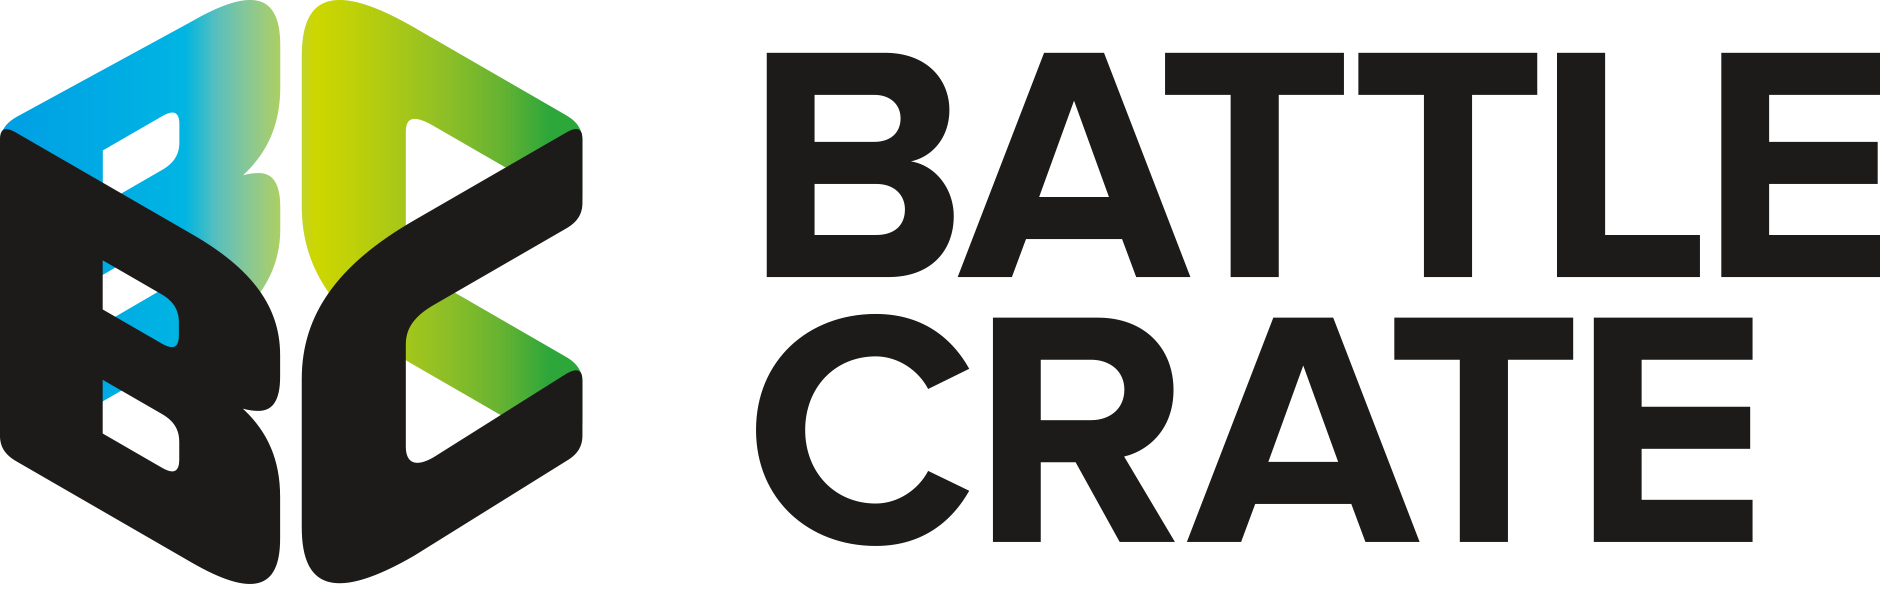 BattleCrate Help Centre home page